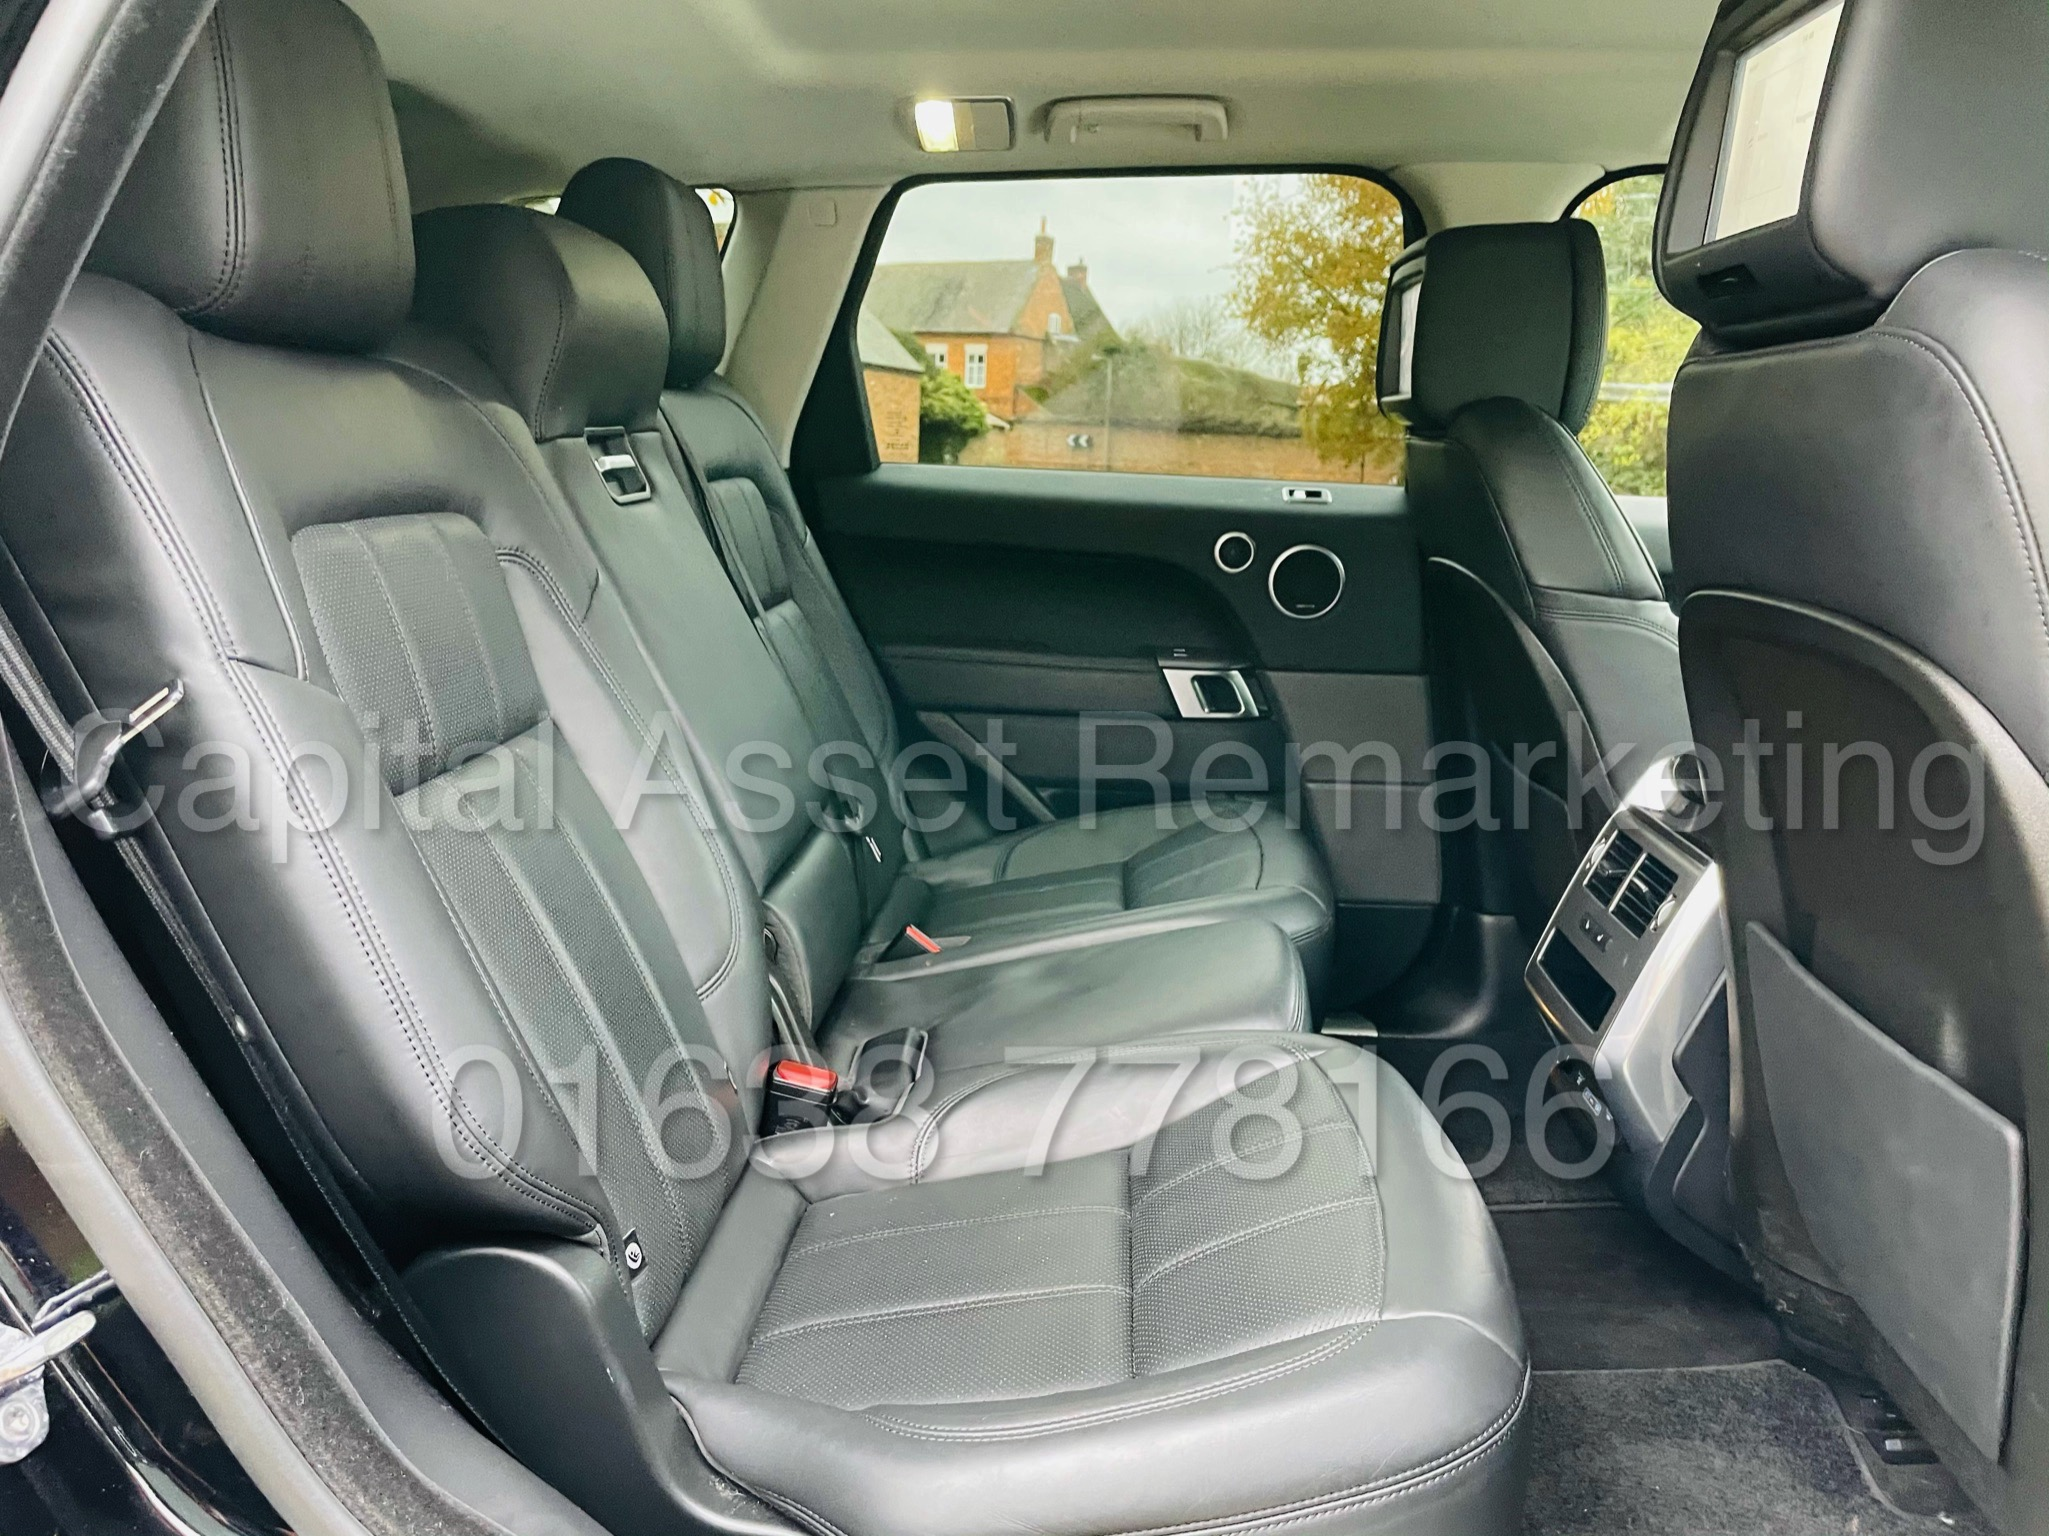 RANGE ROVER SPORT *HSE EDITION* SUV (2019 MODEL) '3.0 SDV6 - 306 BHP - 8 SPEED AUTO' *FULLY LOADED* - Image 32 of 56